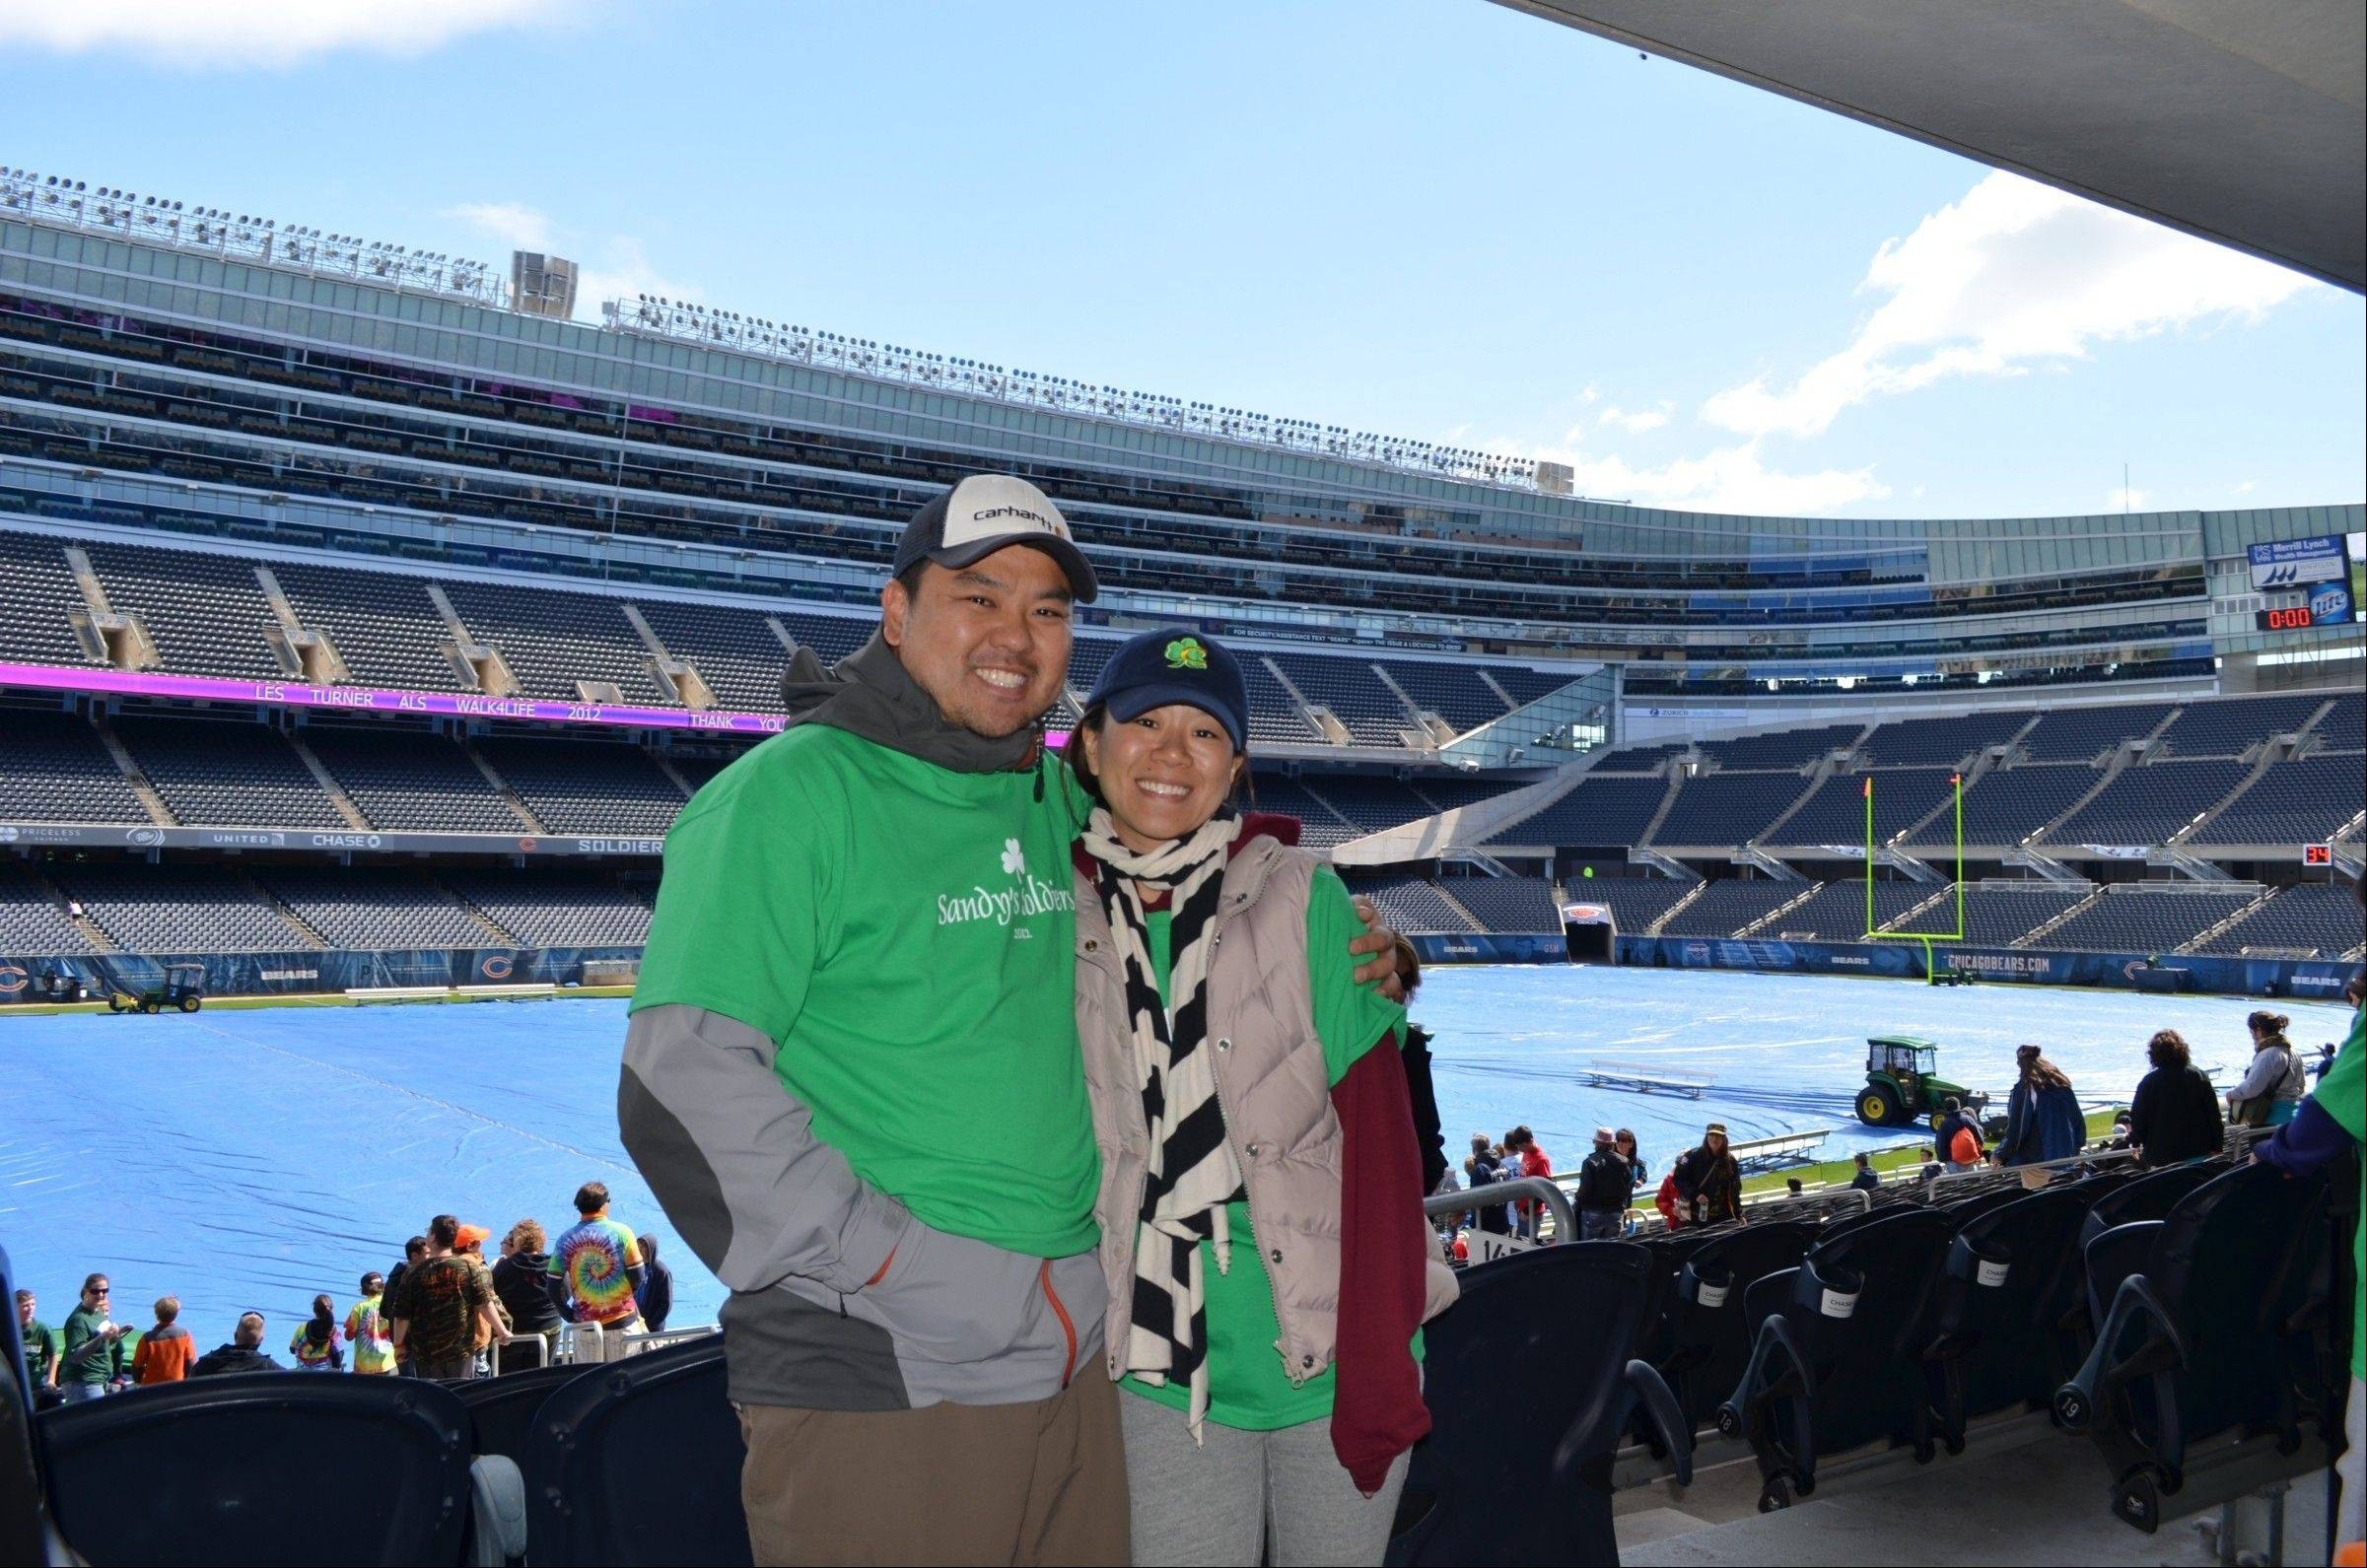 Hans and Susie Shin of Palatine at Soldier Field during the Les Turner ALS Walk4Life